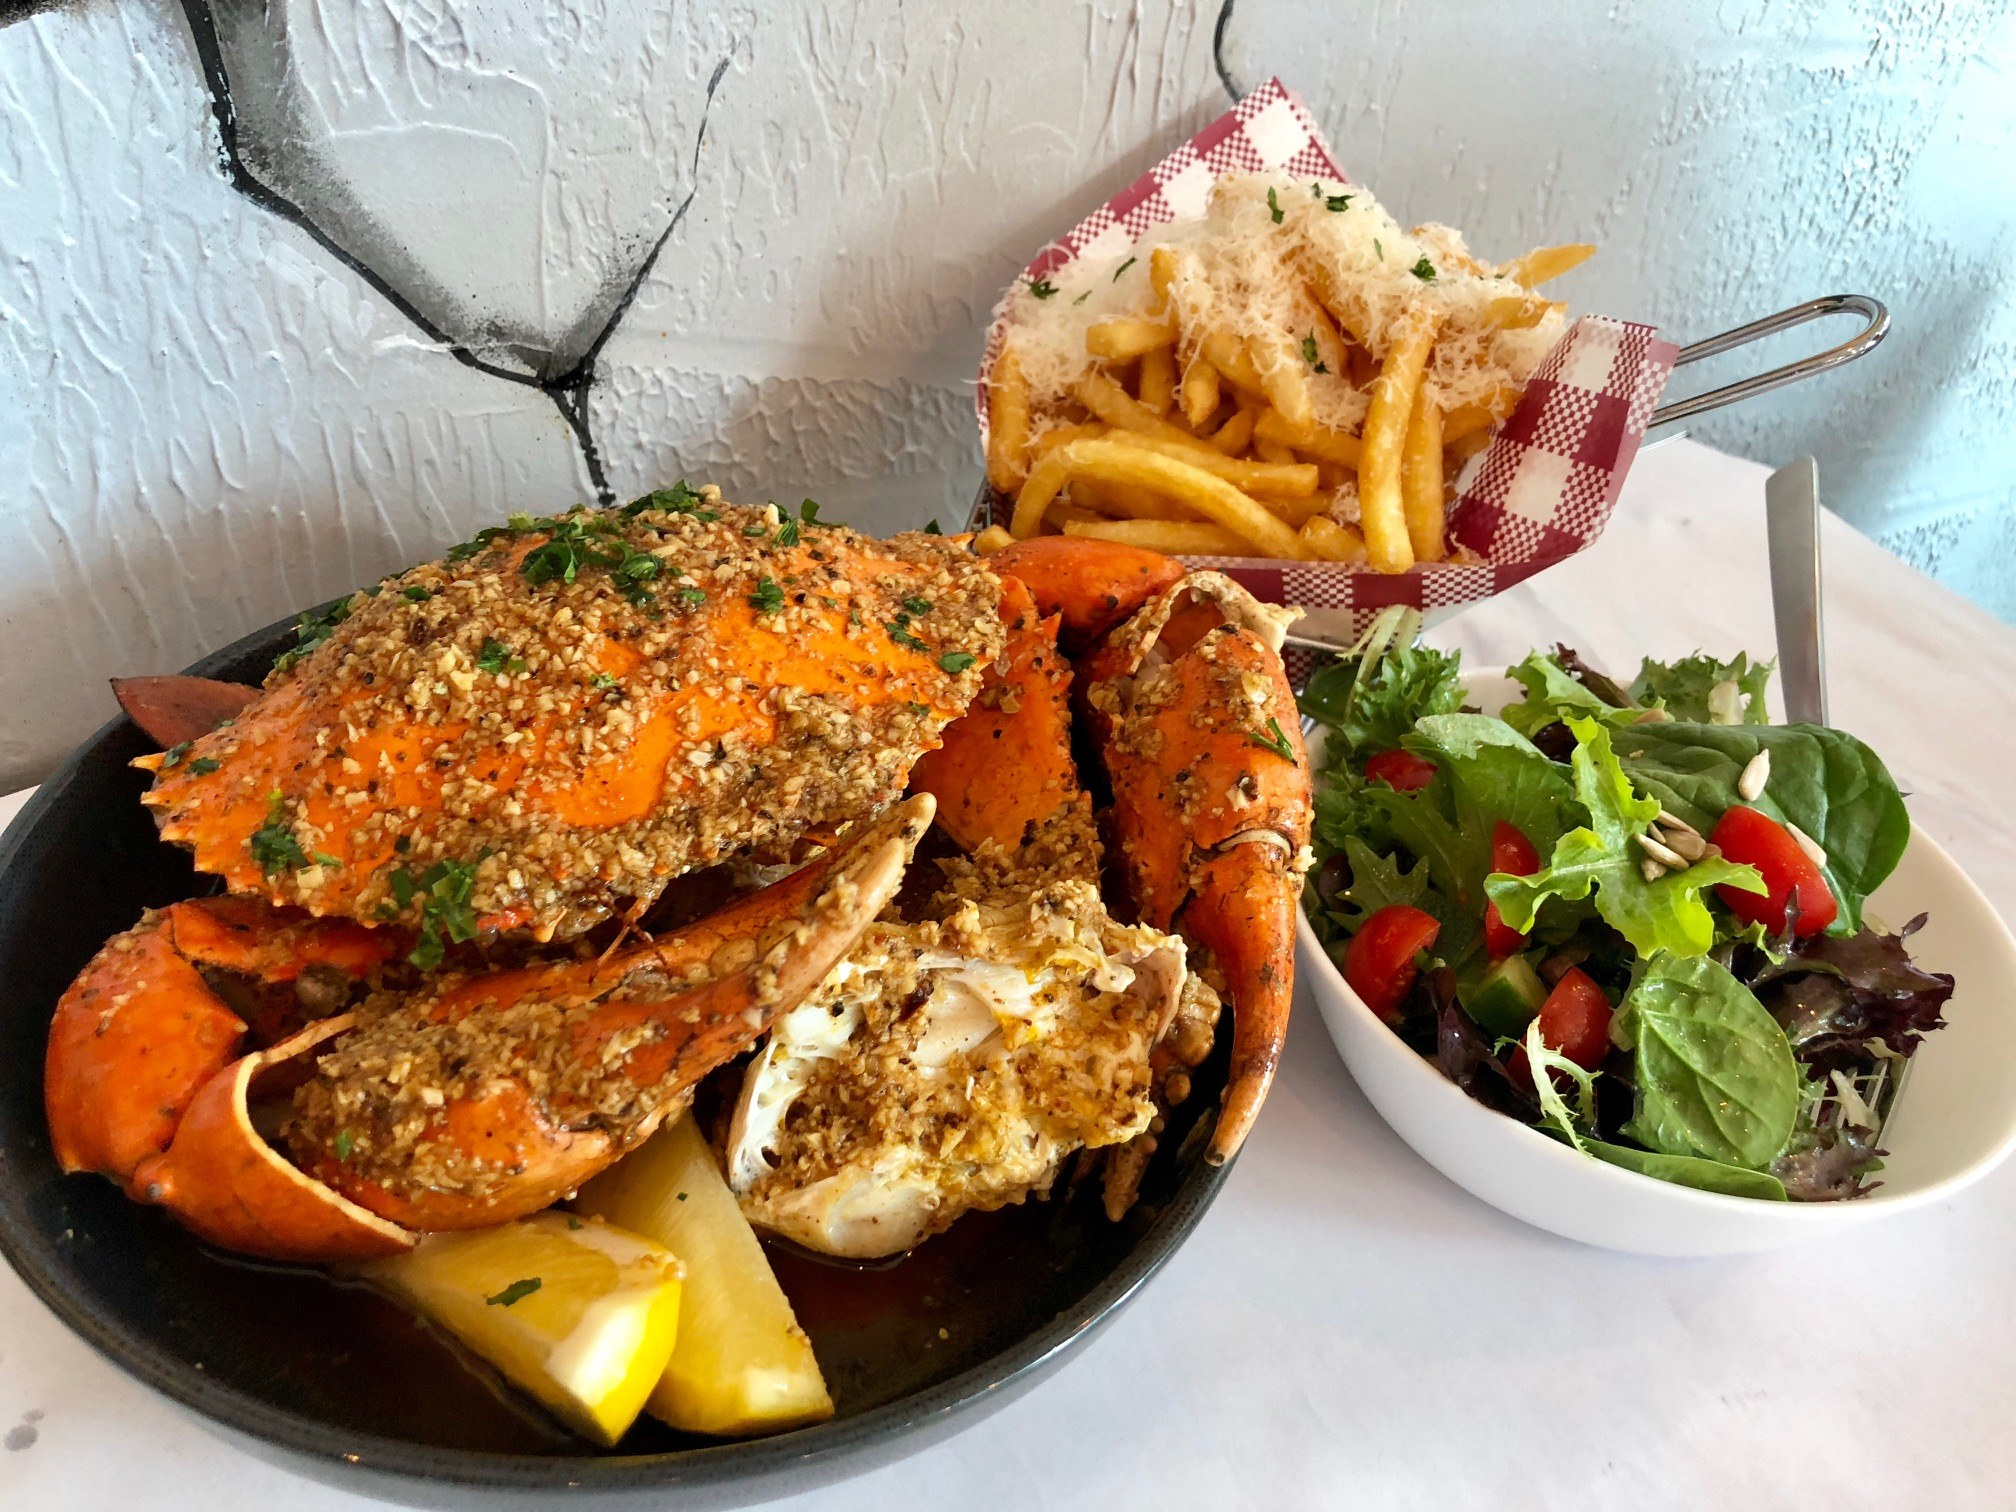 Canapes and Crab Feast At St James Crabhouse, Brisbane